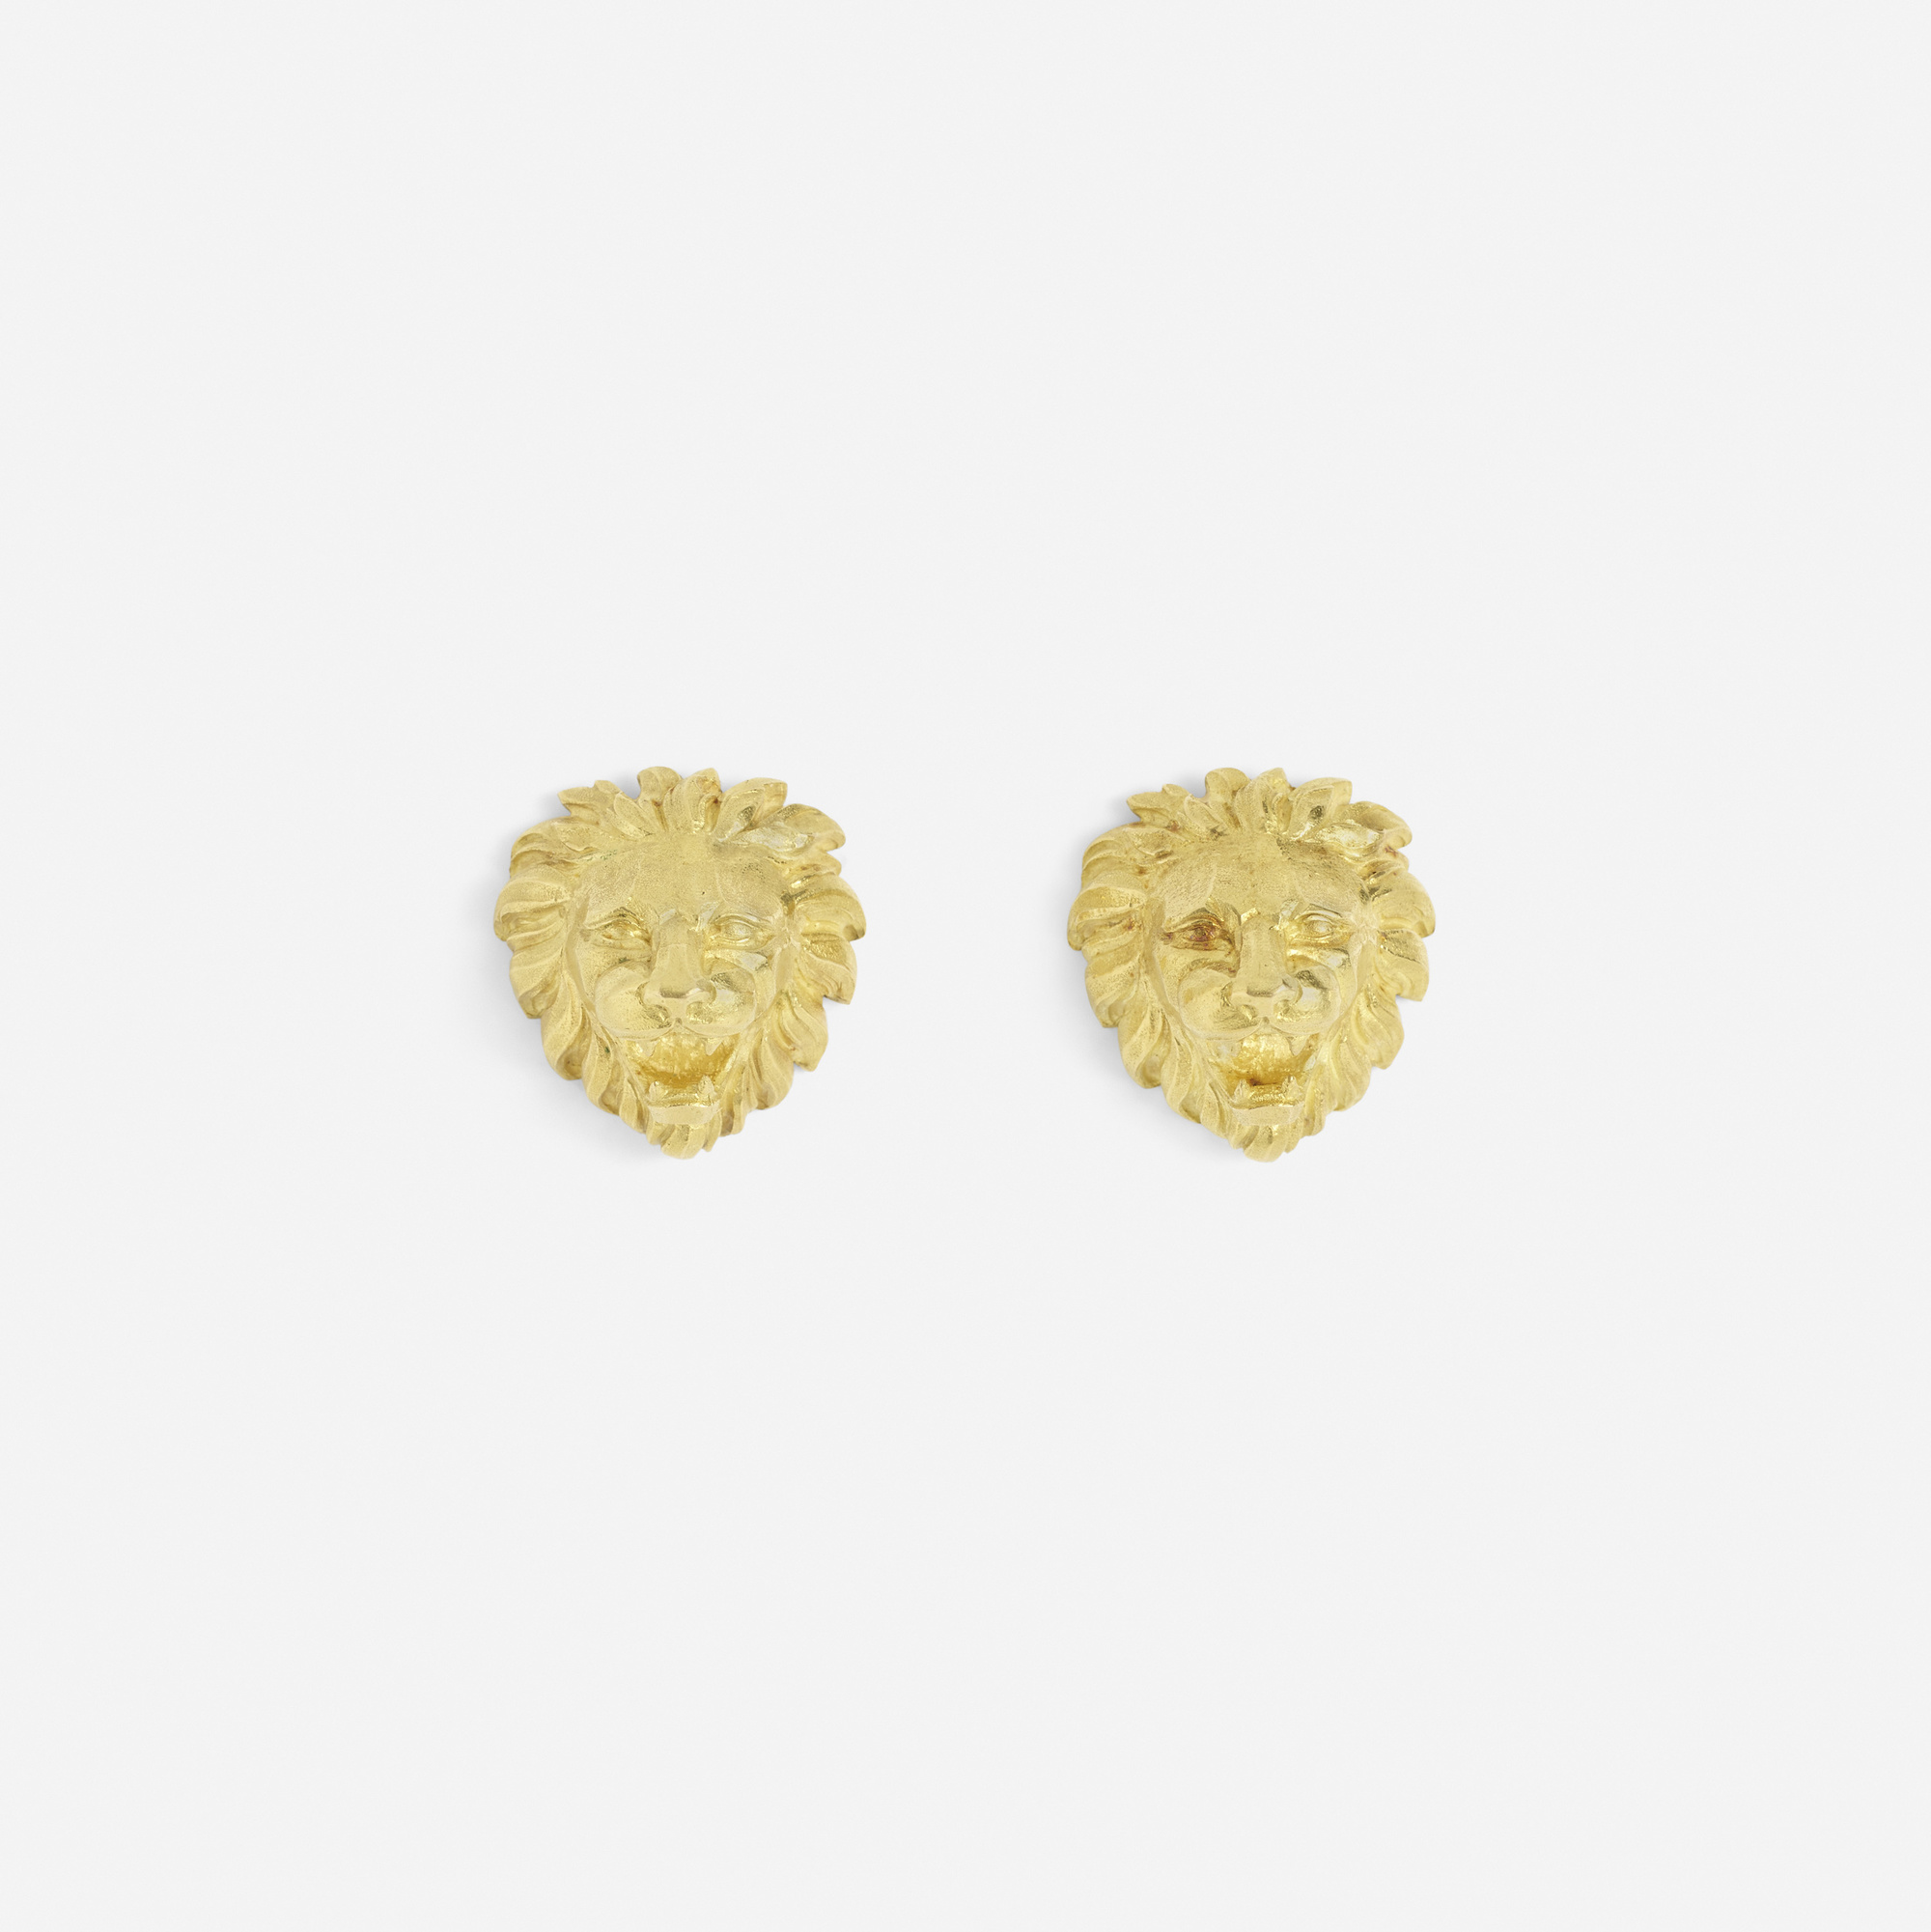 259:  / A pair of gold Lion cufflinks (1 of 2)